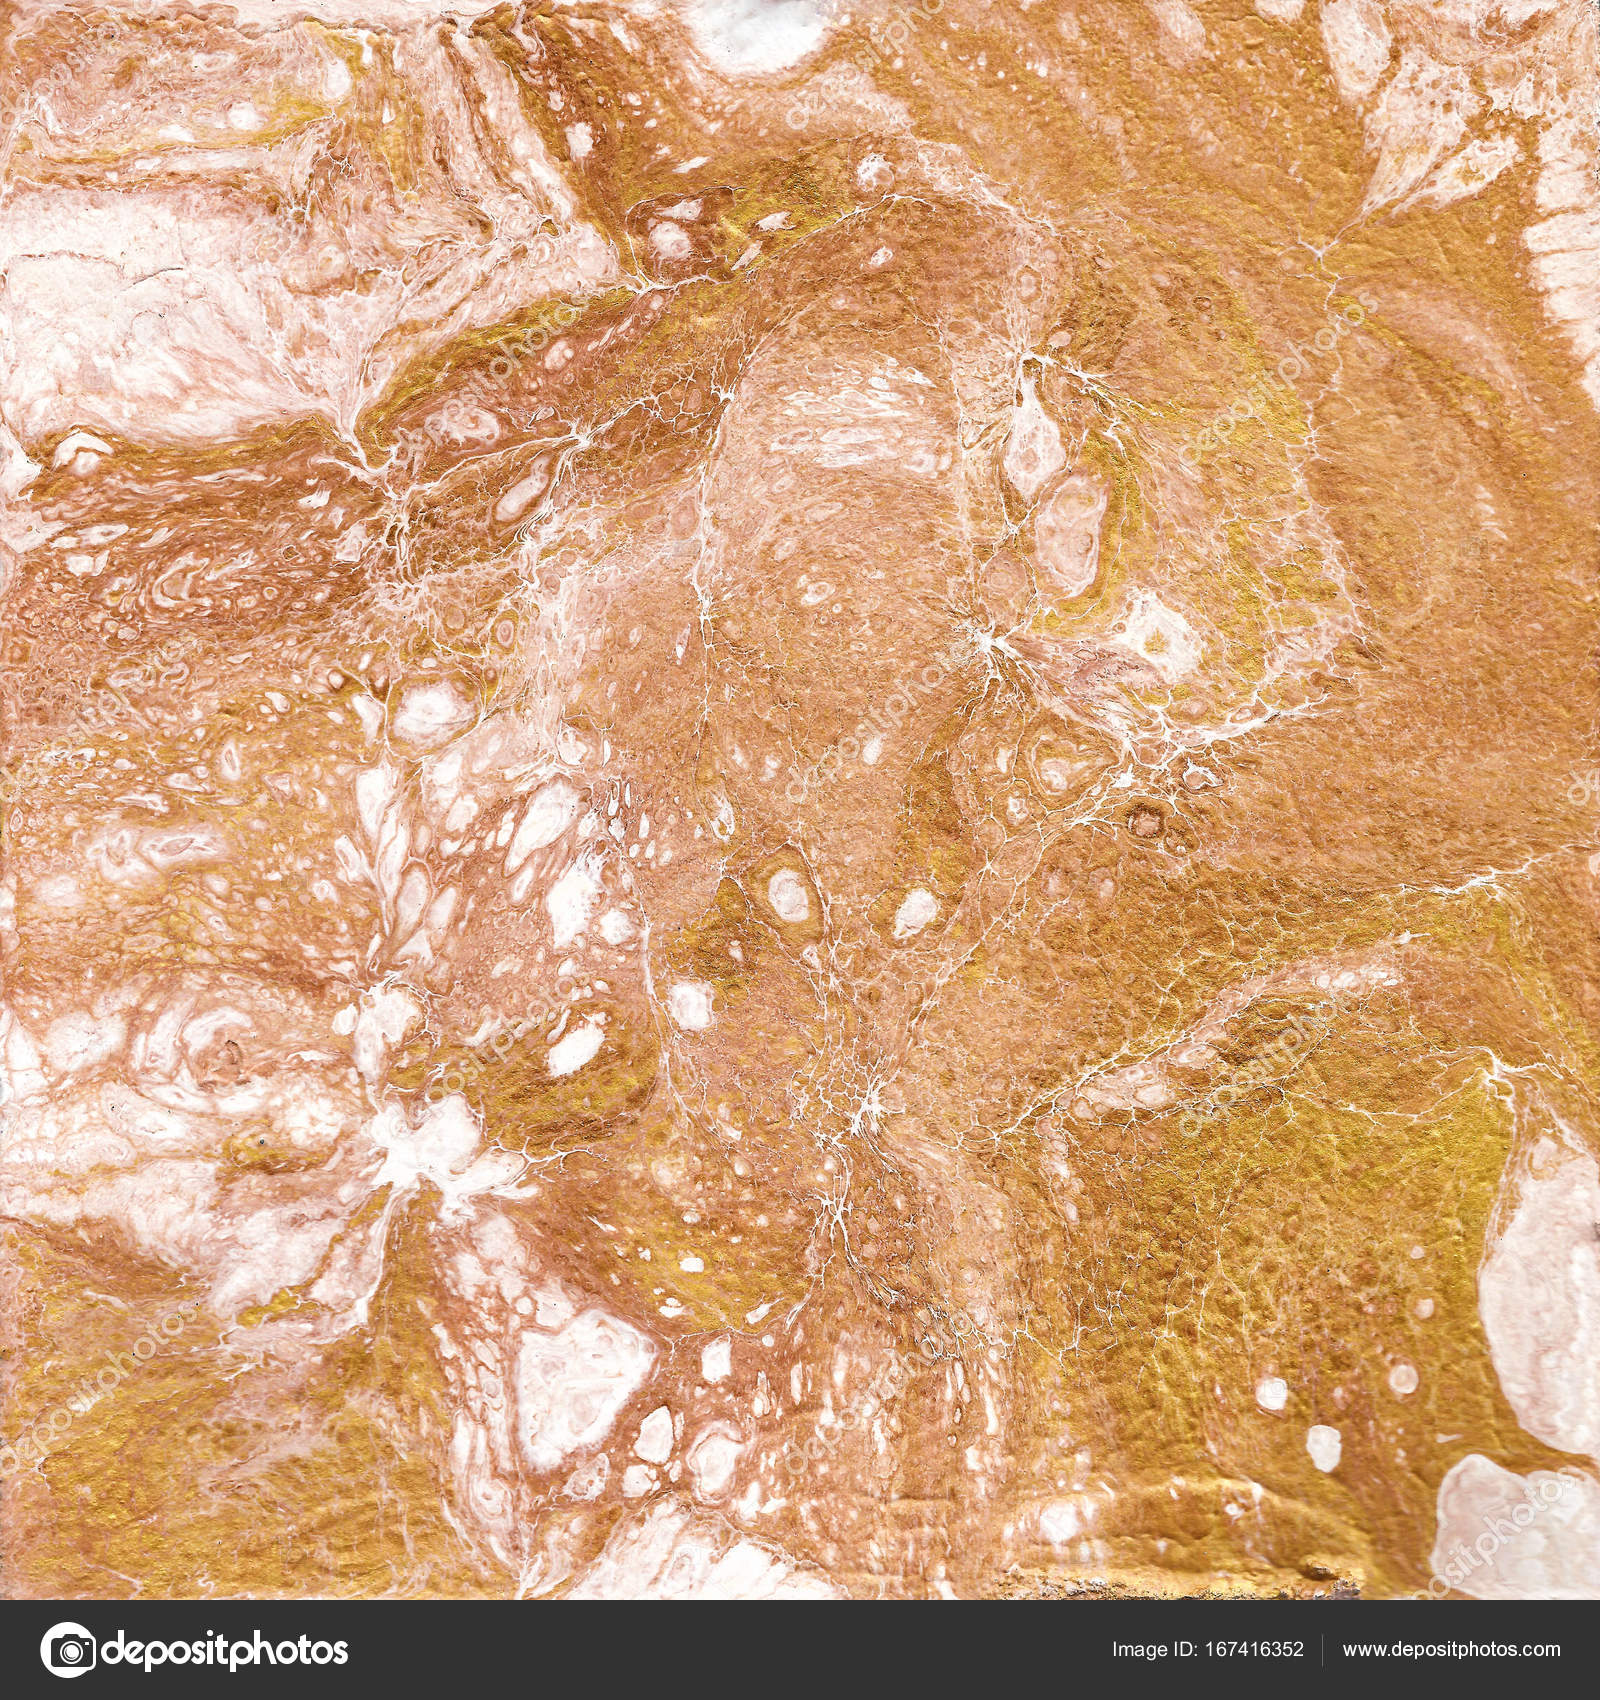 White and golden marble texture Hand draw painting with marbled